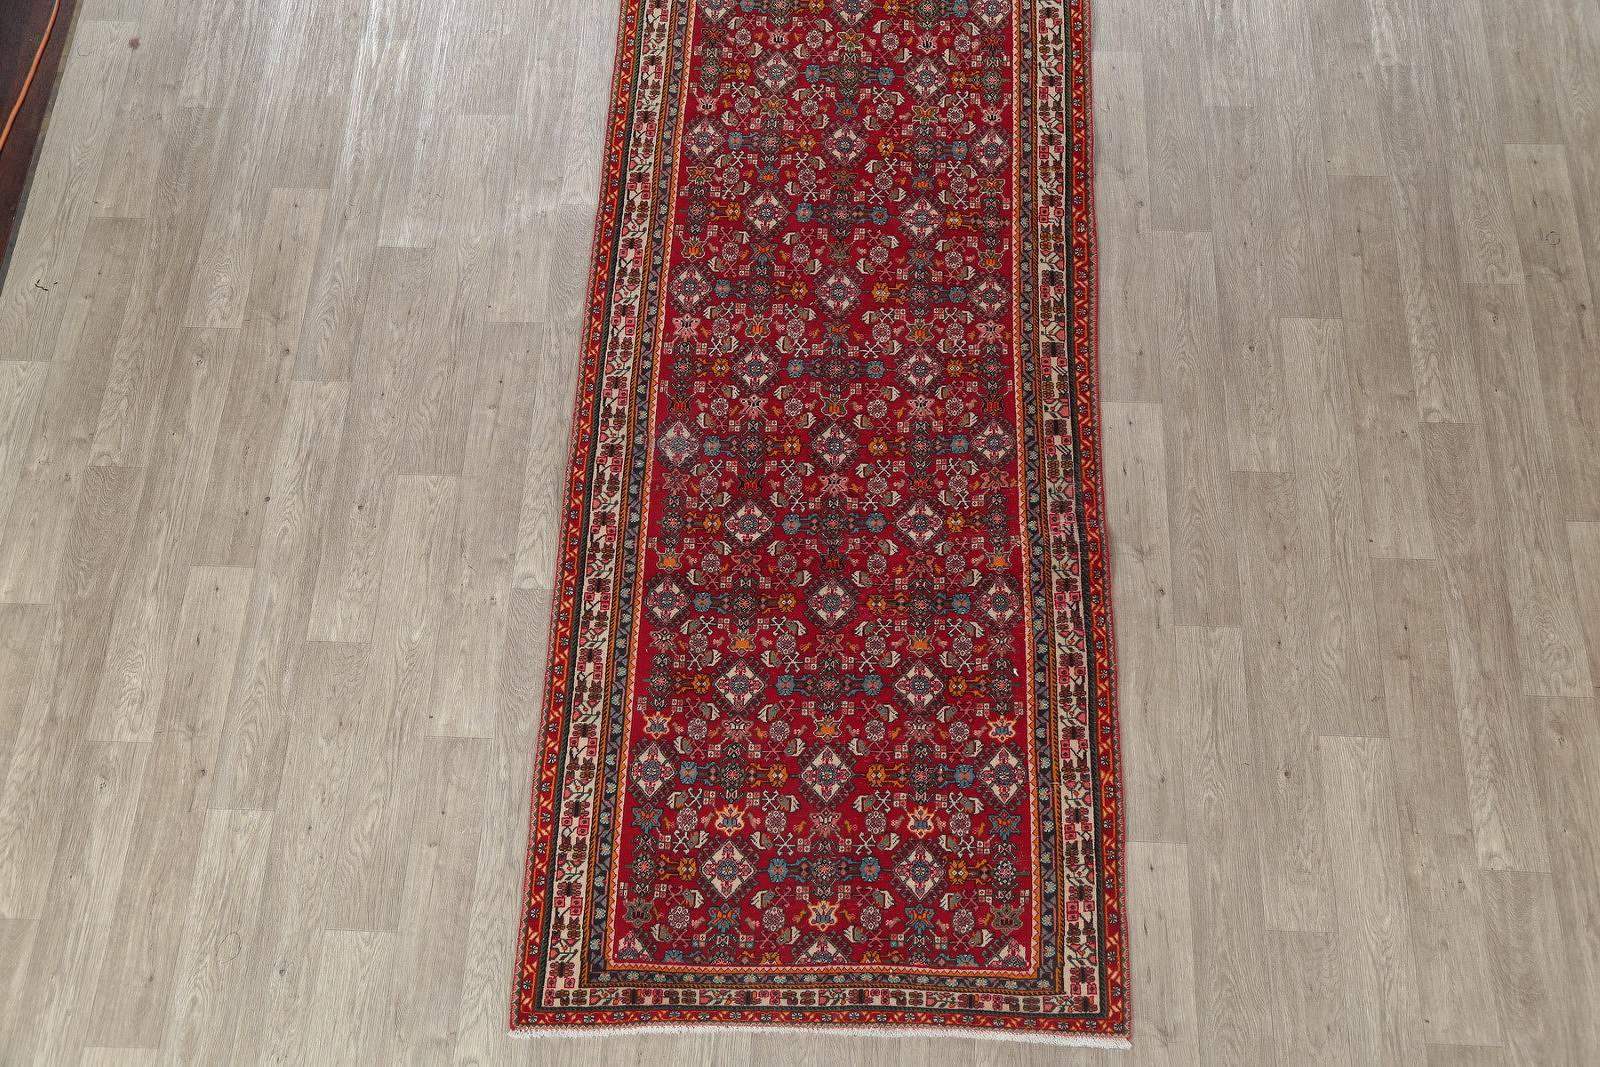 All-Over Geometric Red Kashkoli Persian Hand-Knotted Runner Rug Wool 4x13